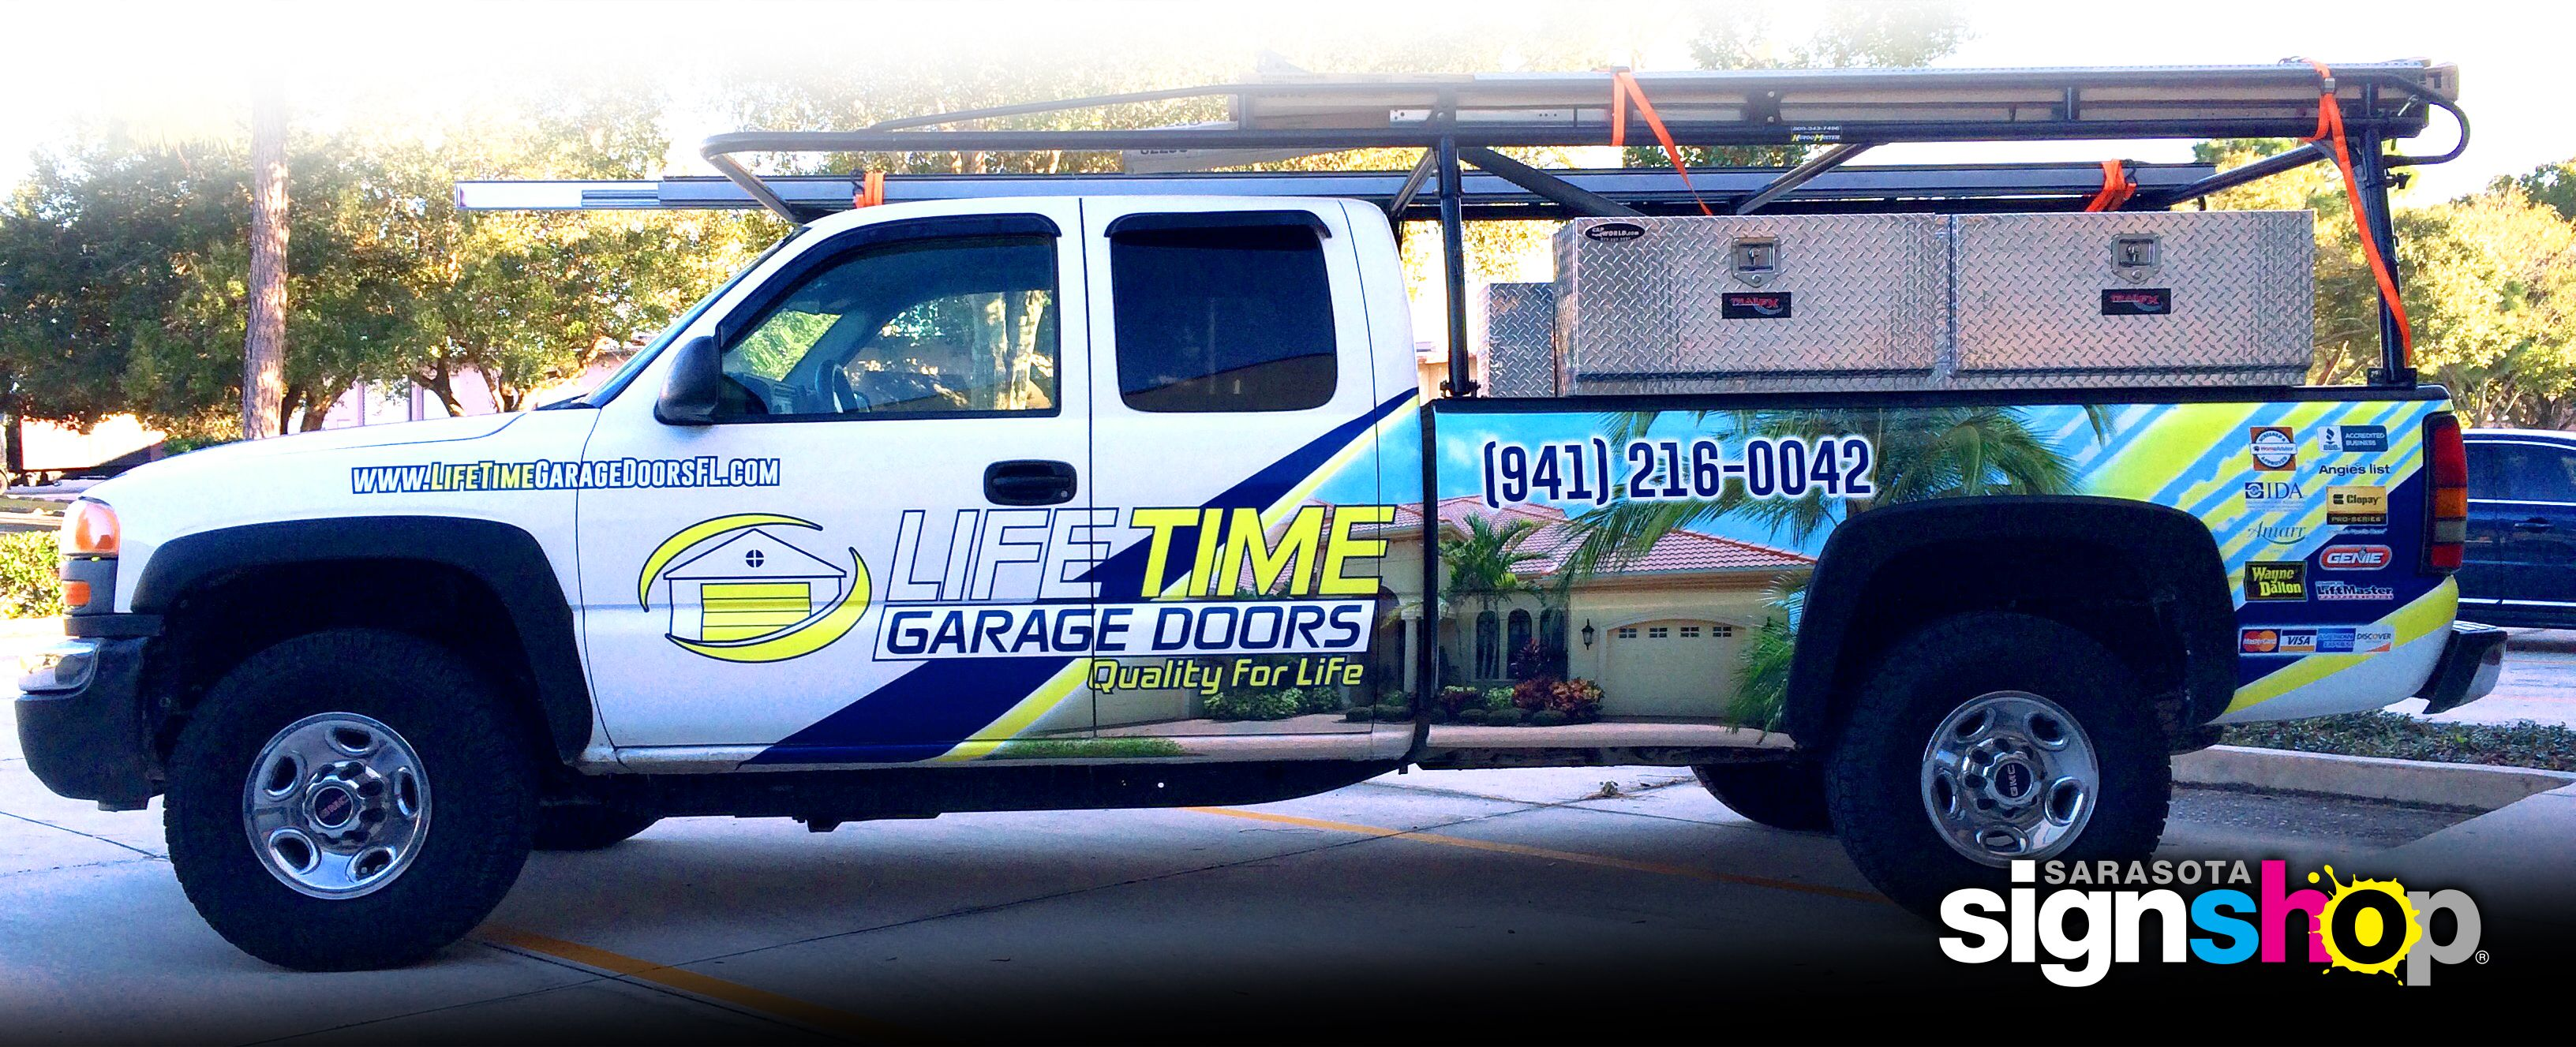 Another quality Wrap produced for LifeTime Garage Doors